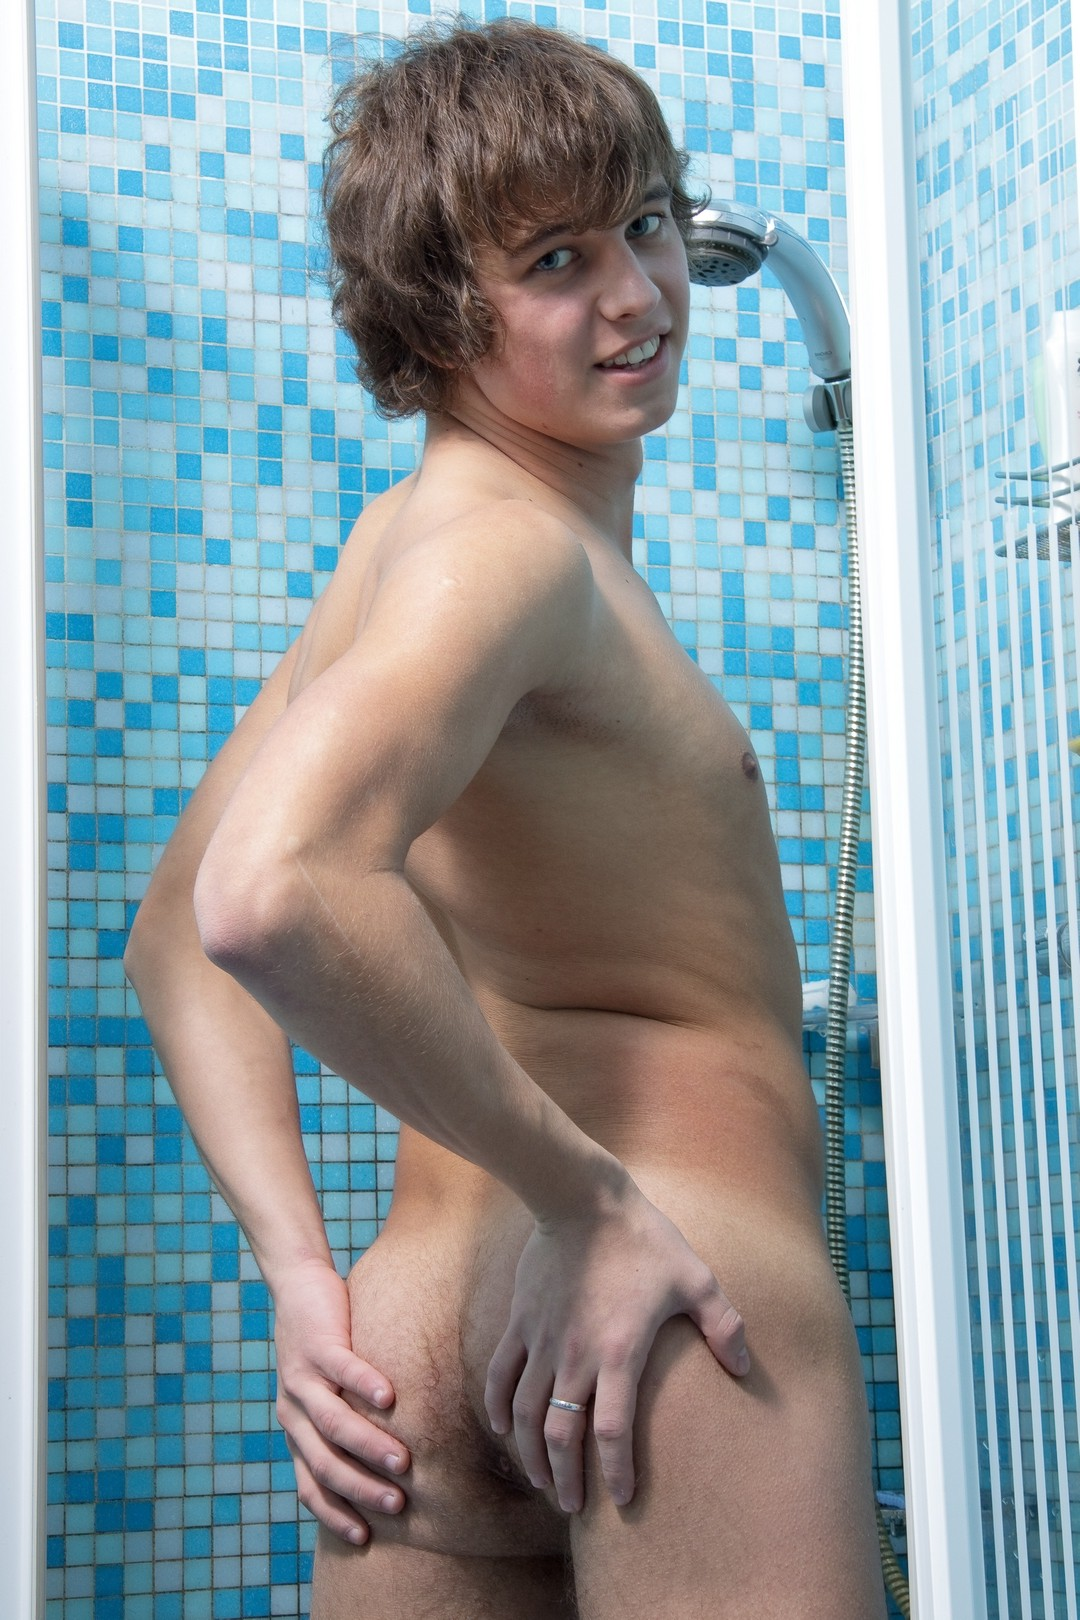 Cute boy with an uncut penis